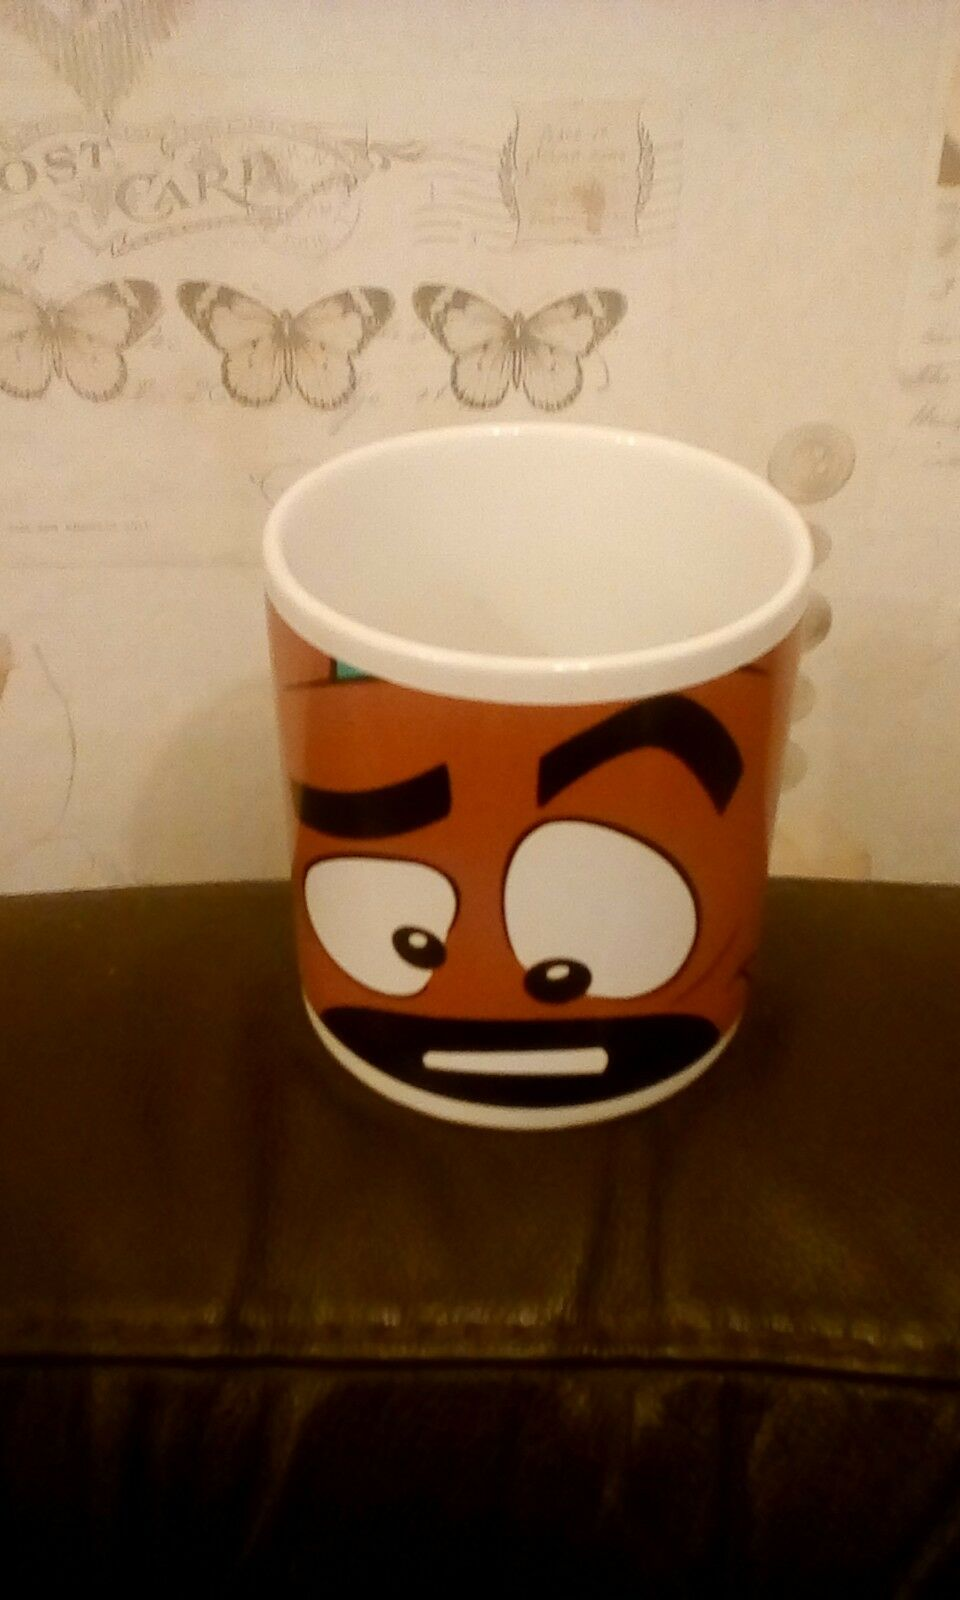 LARGE SCOOBY DOO MUG CARTOON NETWORK  WARNER BROS STORE 1997 11CM HIGH 10CM DIAM